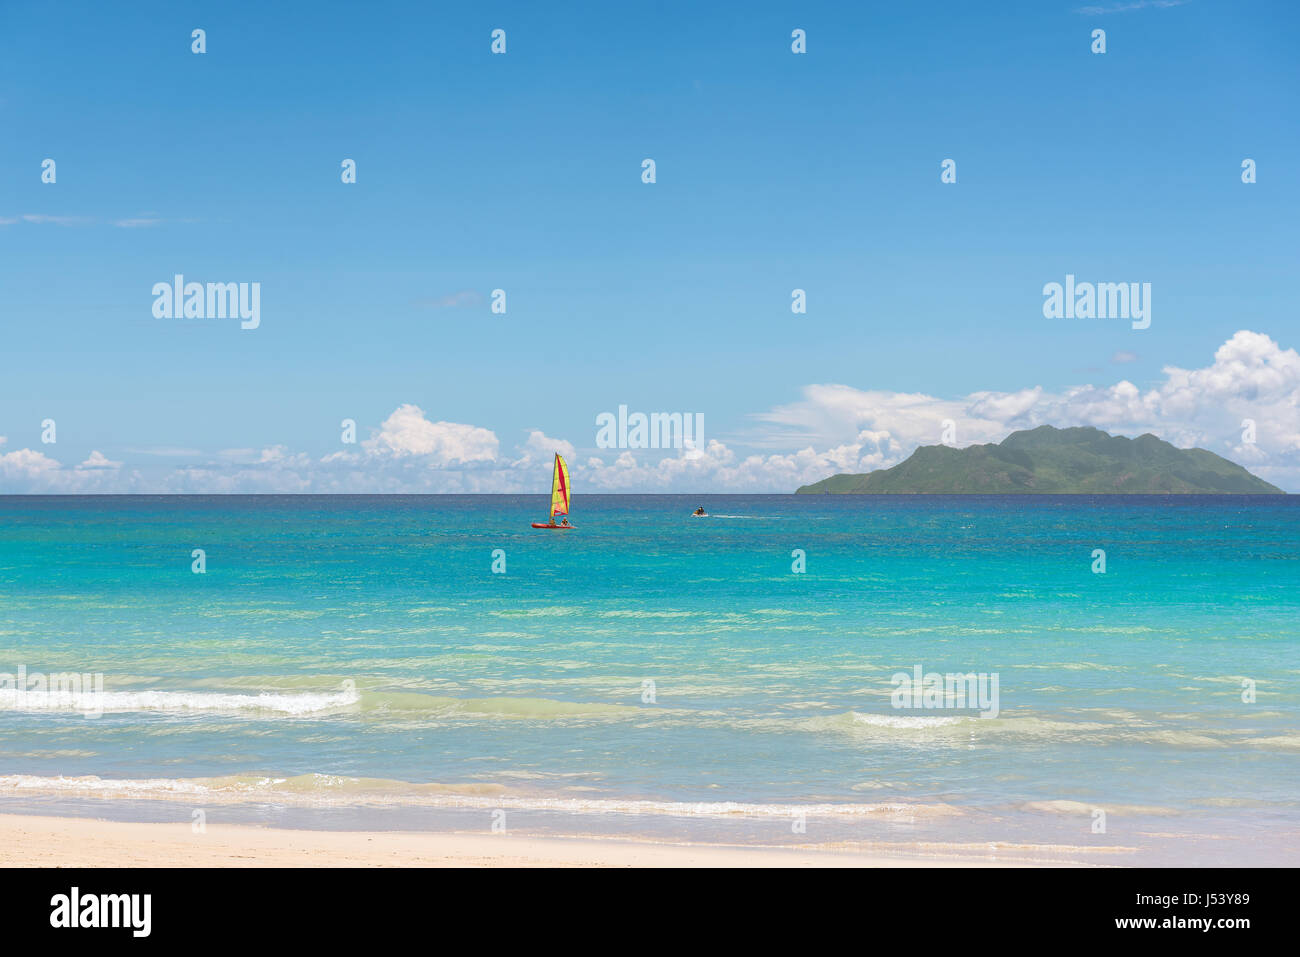 Tropical beach, sailing boat and island in the ocean. - Stock Image